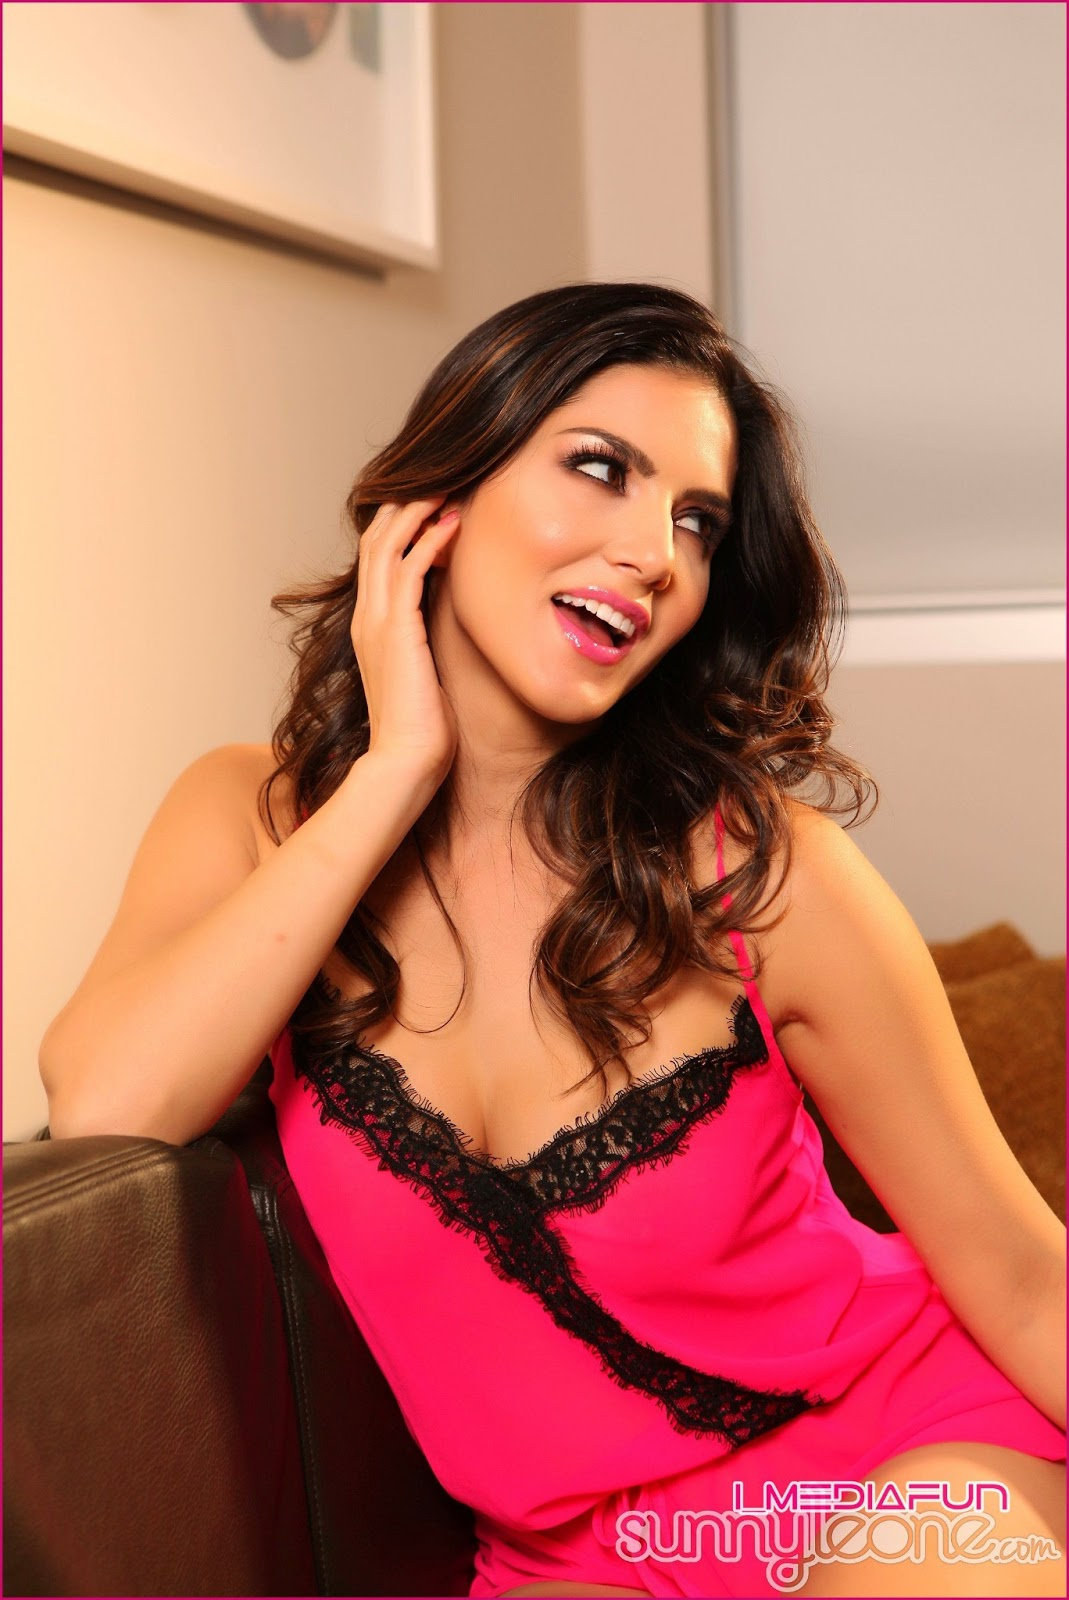 www.CelebTiger.com+Indian+Nude+Actress+Sunny+Leones+Pretty+in+Pink+(08+JUNE+13)++(3) Sunny Leone Showing Her Big Round Boobs And Juicy Pussy HQ Photo Gallery